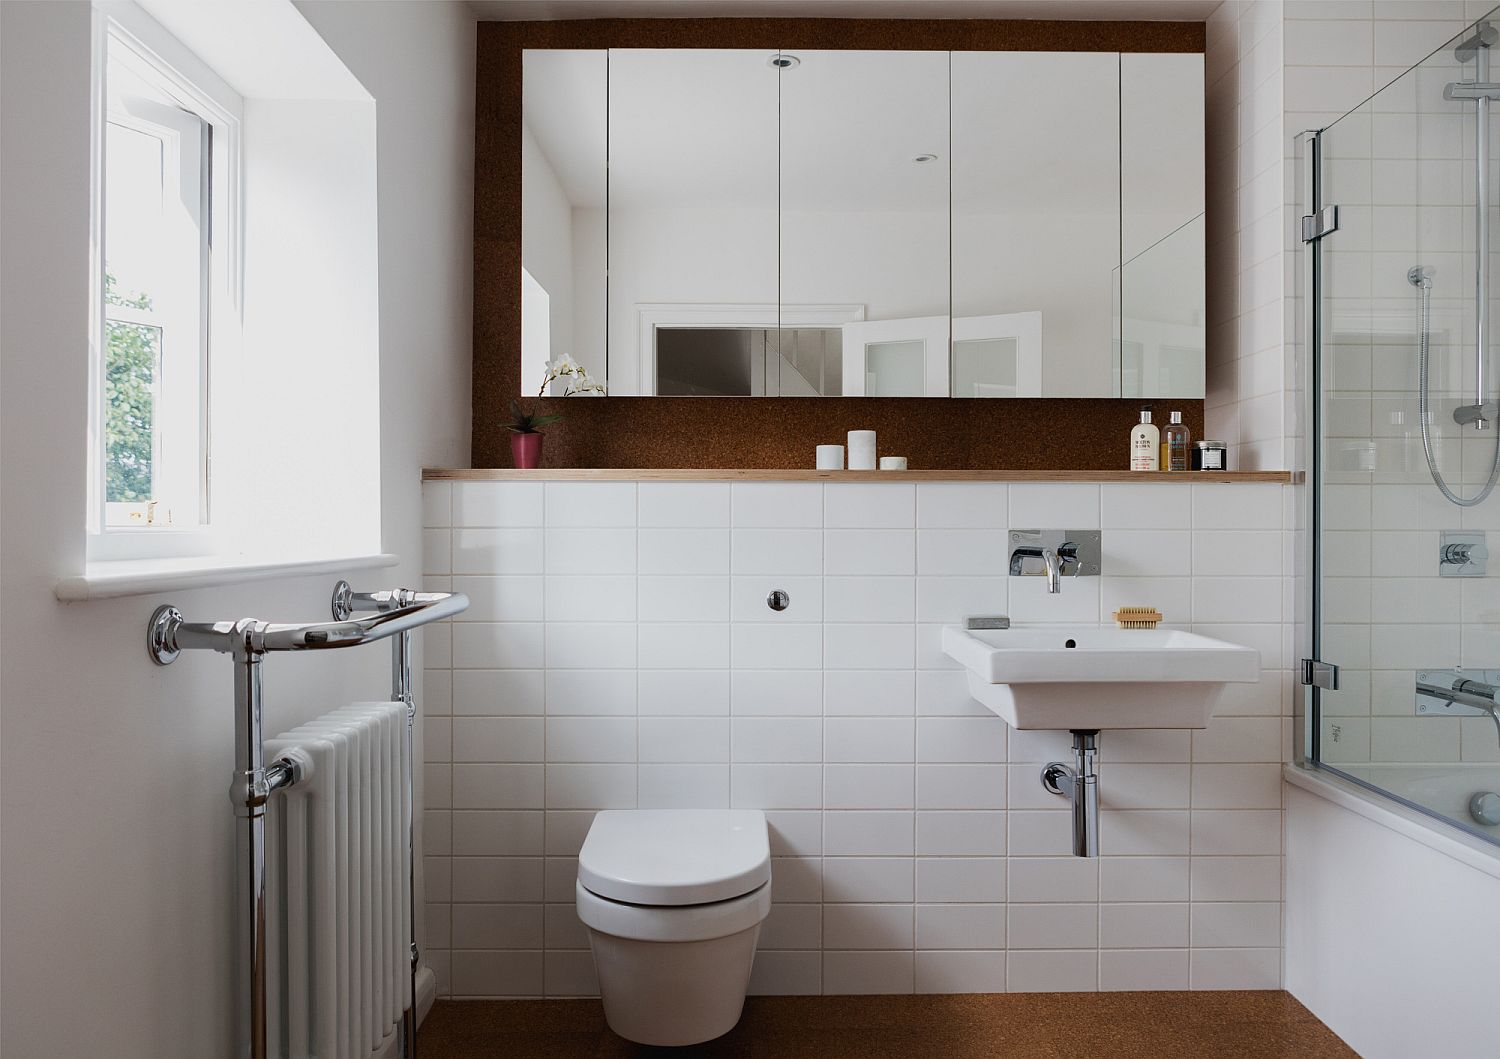 Modern-bathroom-in-white-with-white-tiles-and-cork-floor